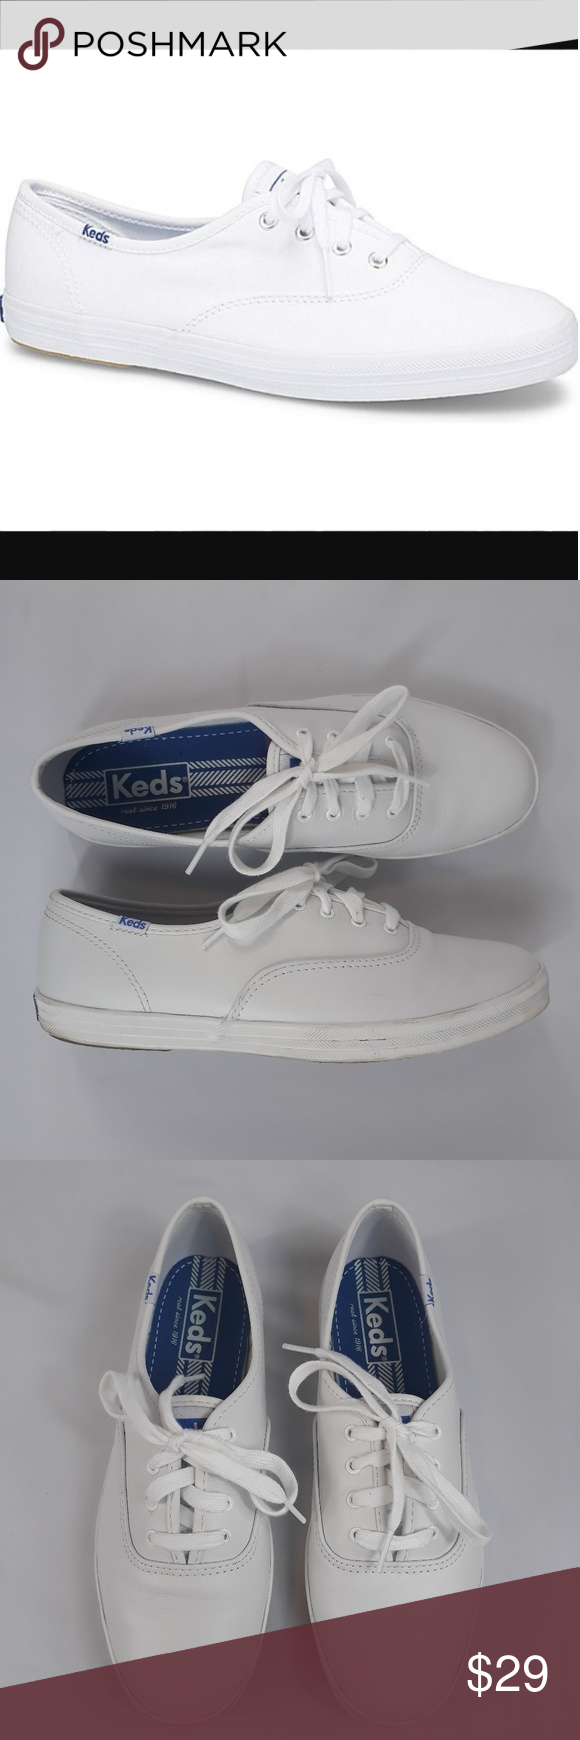 facd5164053a KEDS Champion Originals Lace Sneakers White 8 Keds champion original tennis  shoe in white. 4